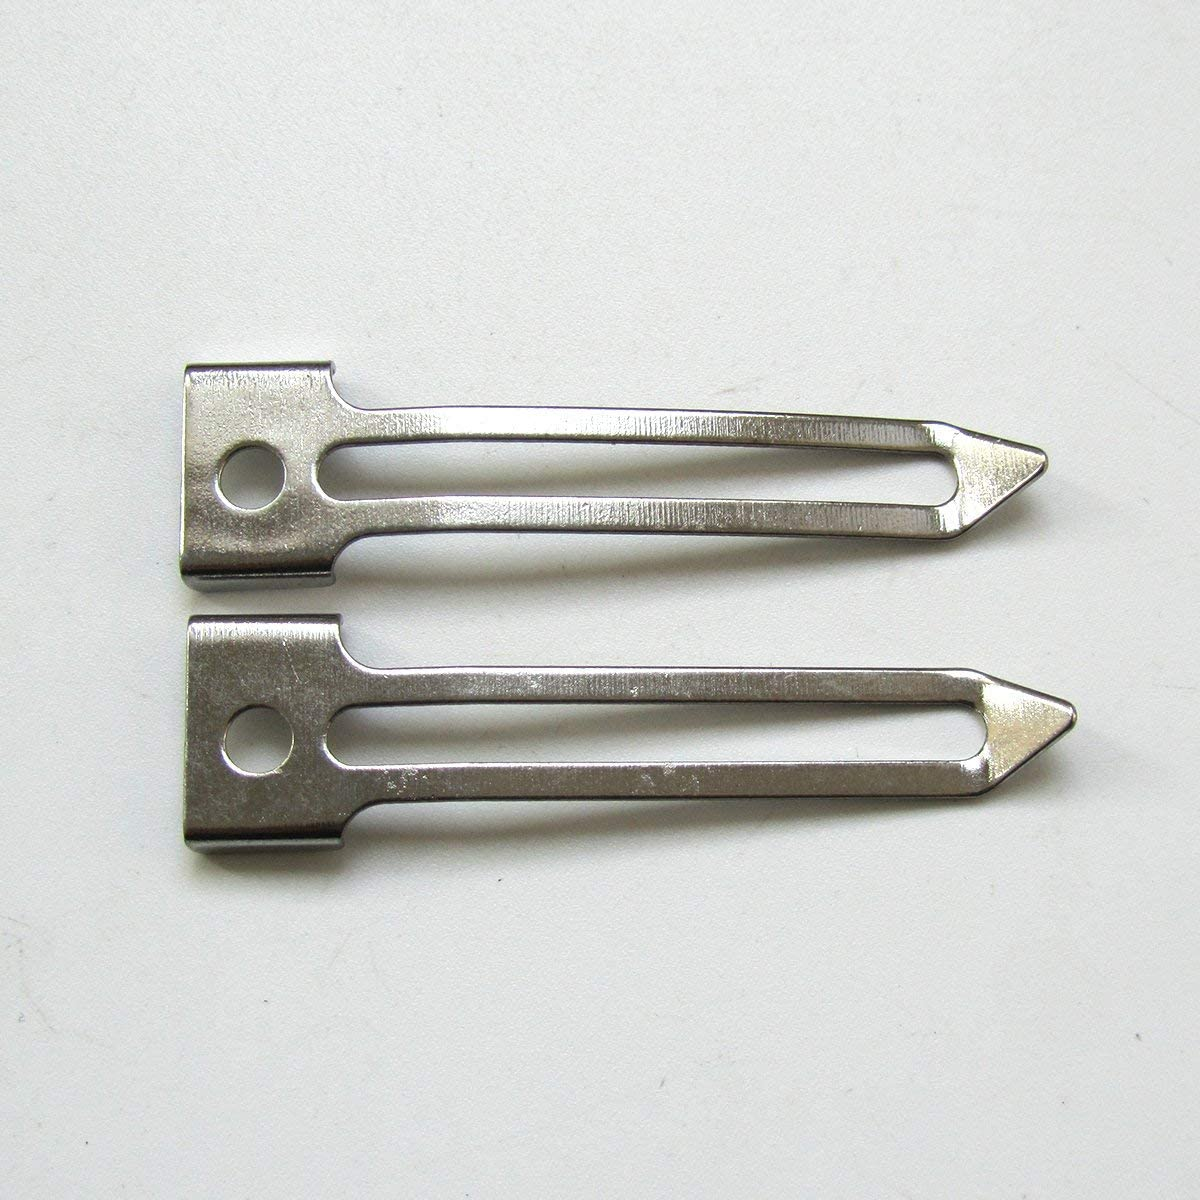 KUNPENG - 2 PCS Part # 150810001 Thread Handle for Brother MA4-B693 Sewing Machine